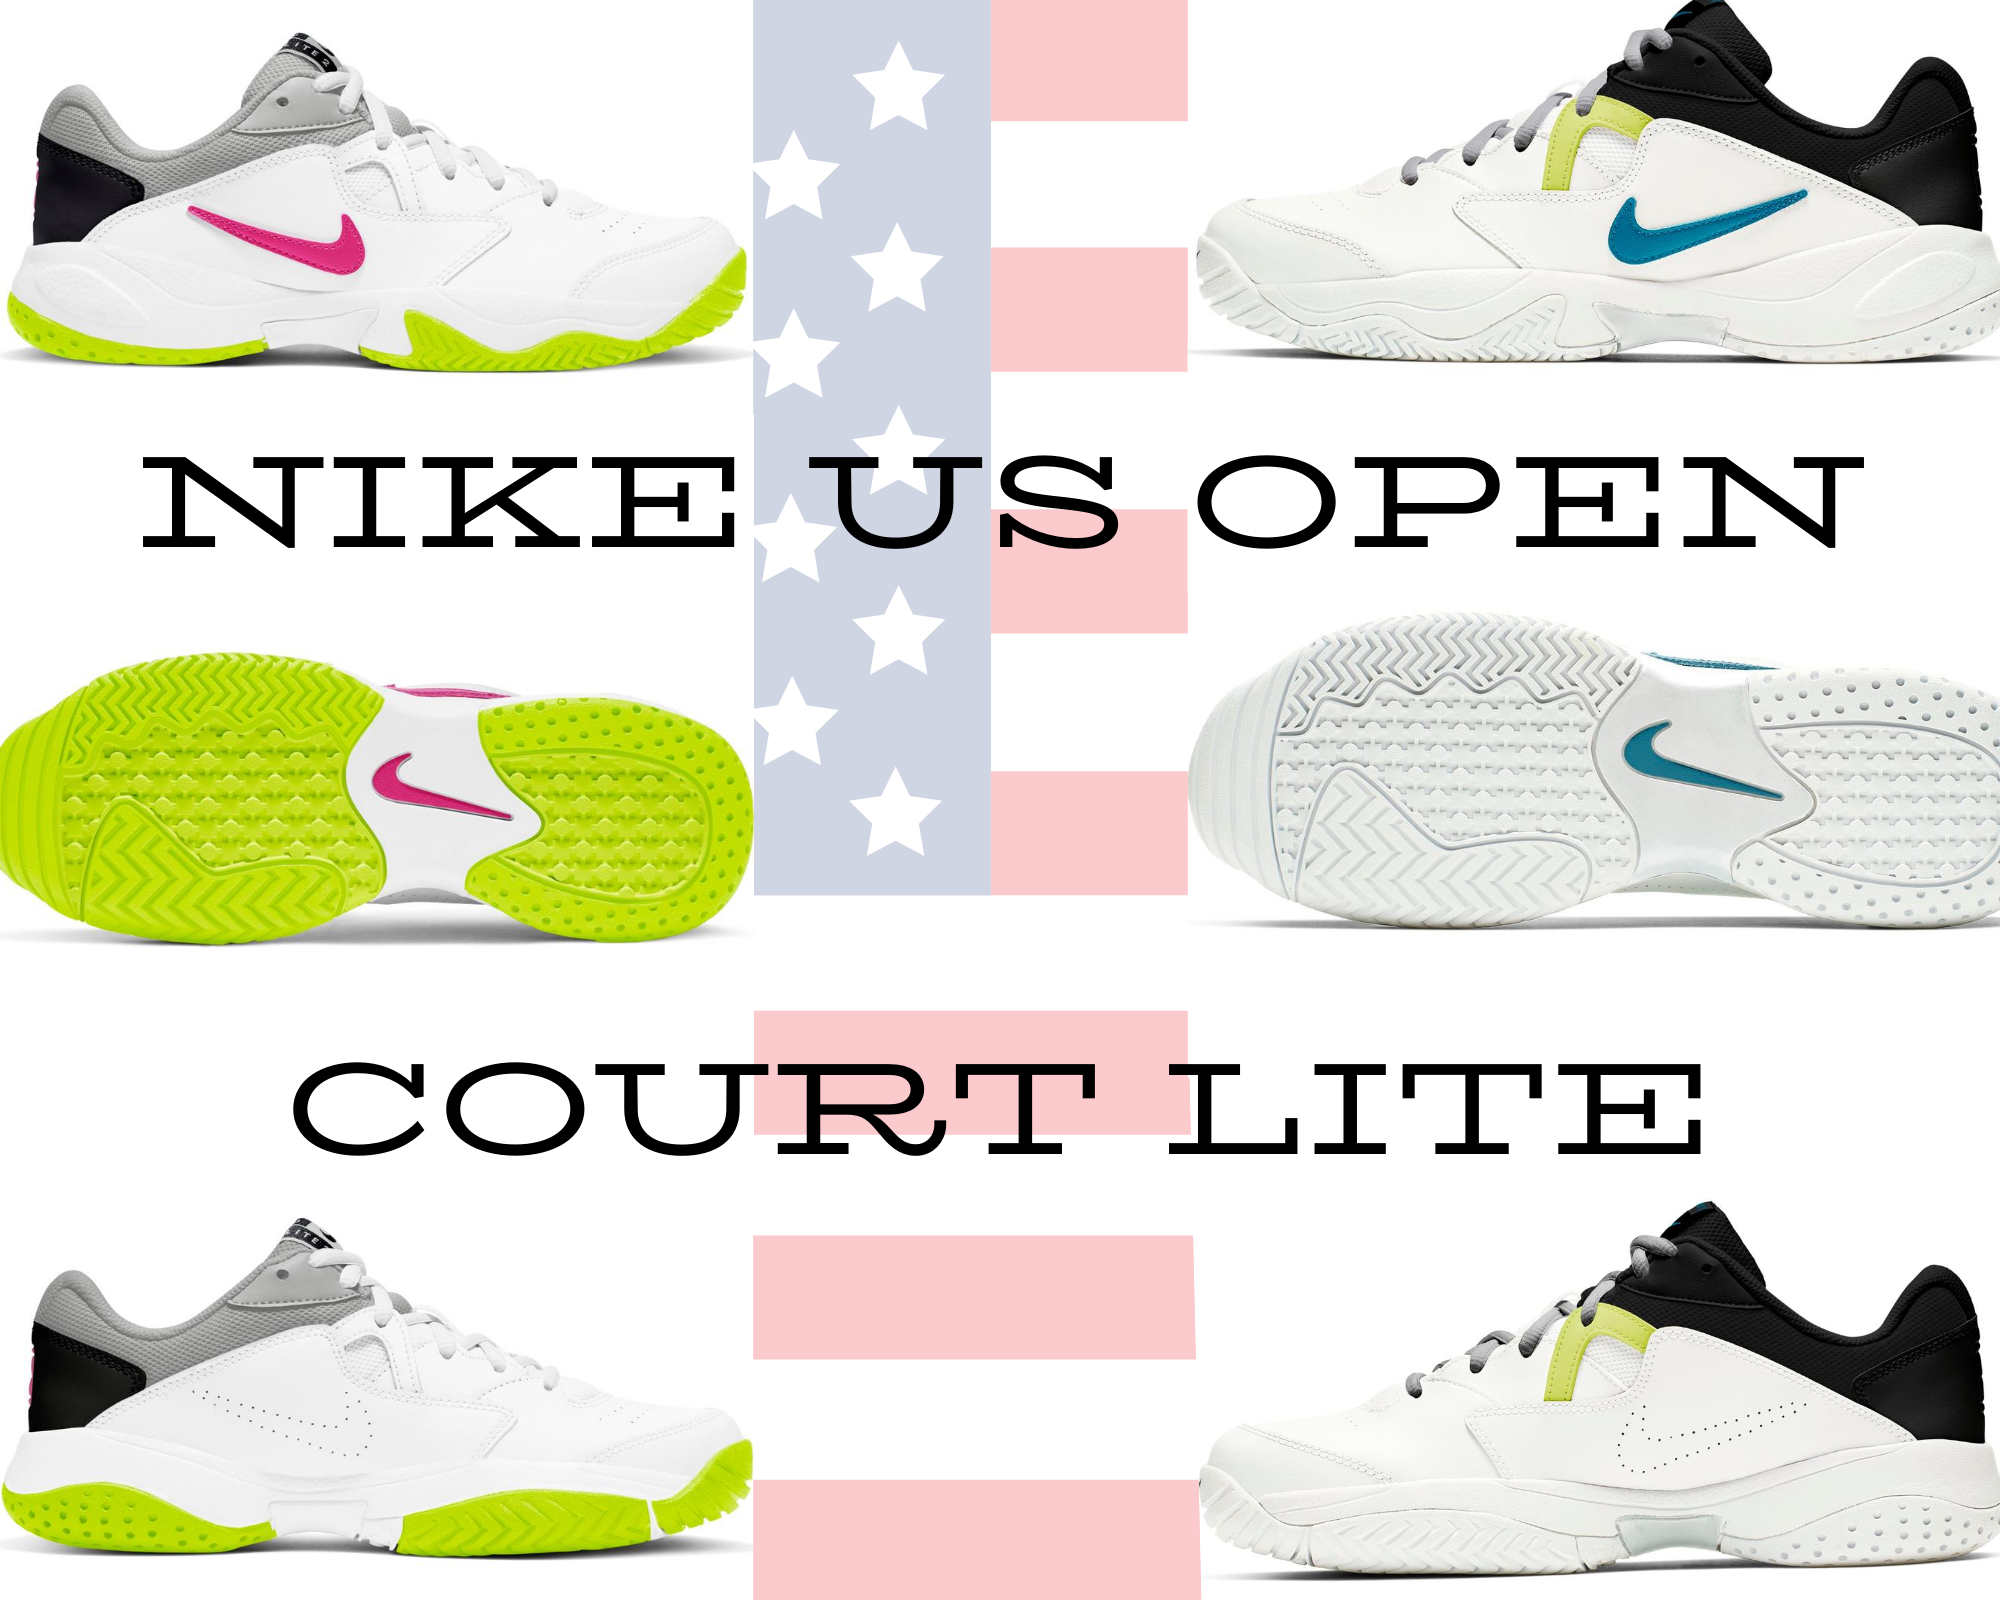 Nike Tennis Shoe Collection for 2020 US Open